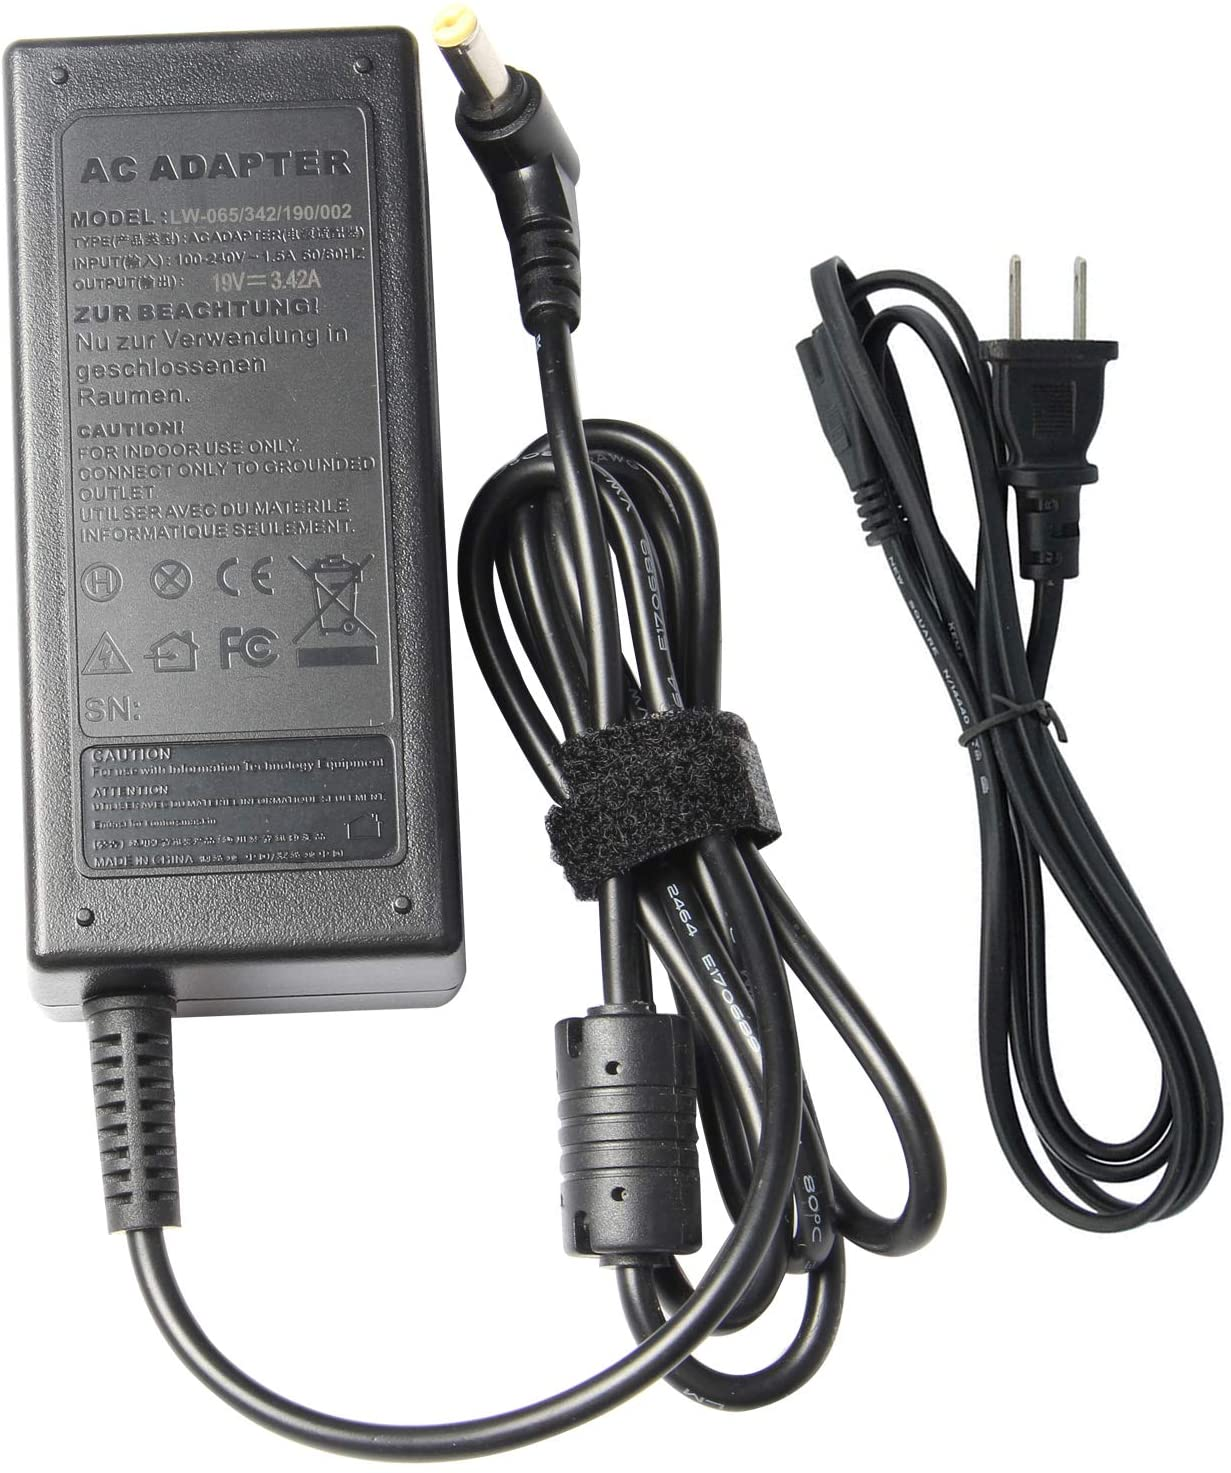 AC Adapter for Acer G277HL GN246HL H257HU R271 R221Q UT220HQL XG270HU LED Monitor Power Supply